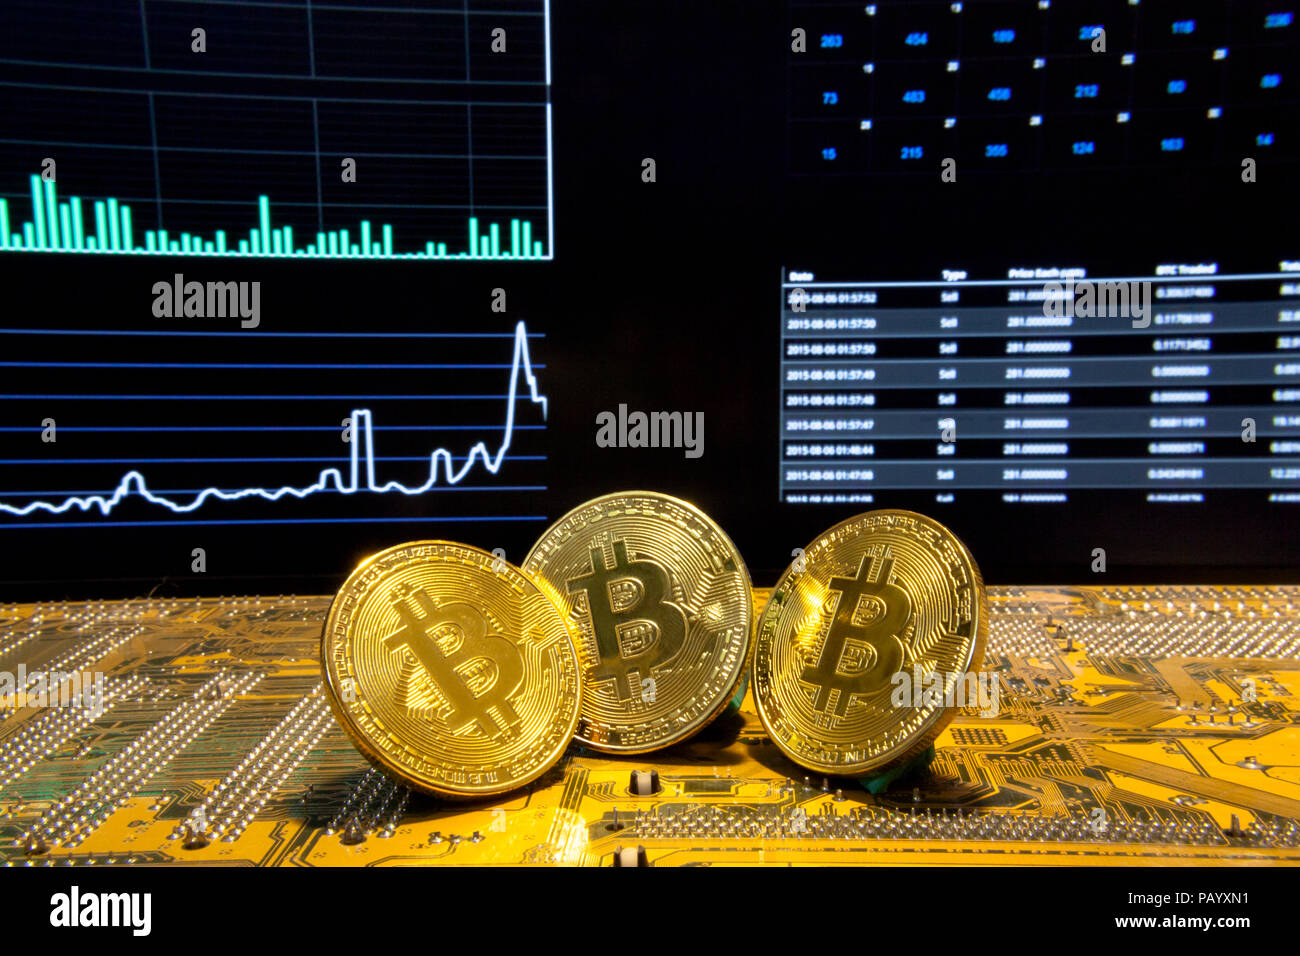 Three golden bitcoins on a printed circuit board. Background: statistics, charts and indicators, about virtual digital crypto-currencies; clear shot. - Stock Image